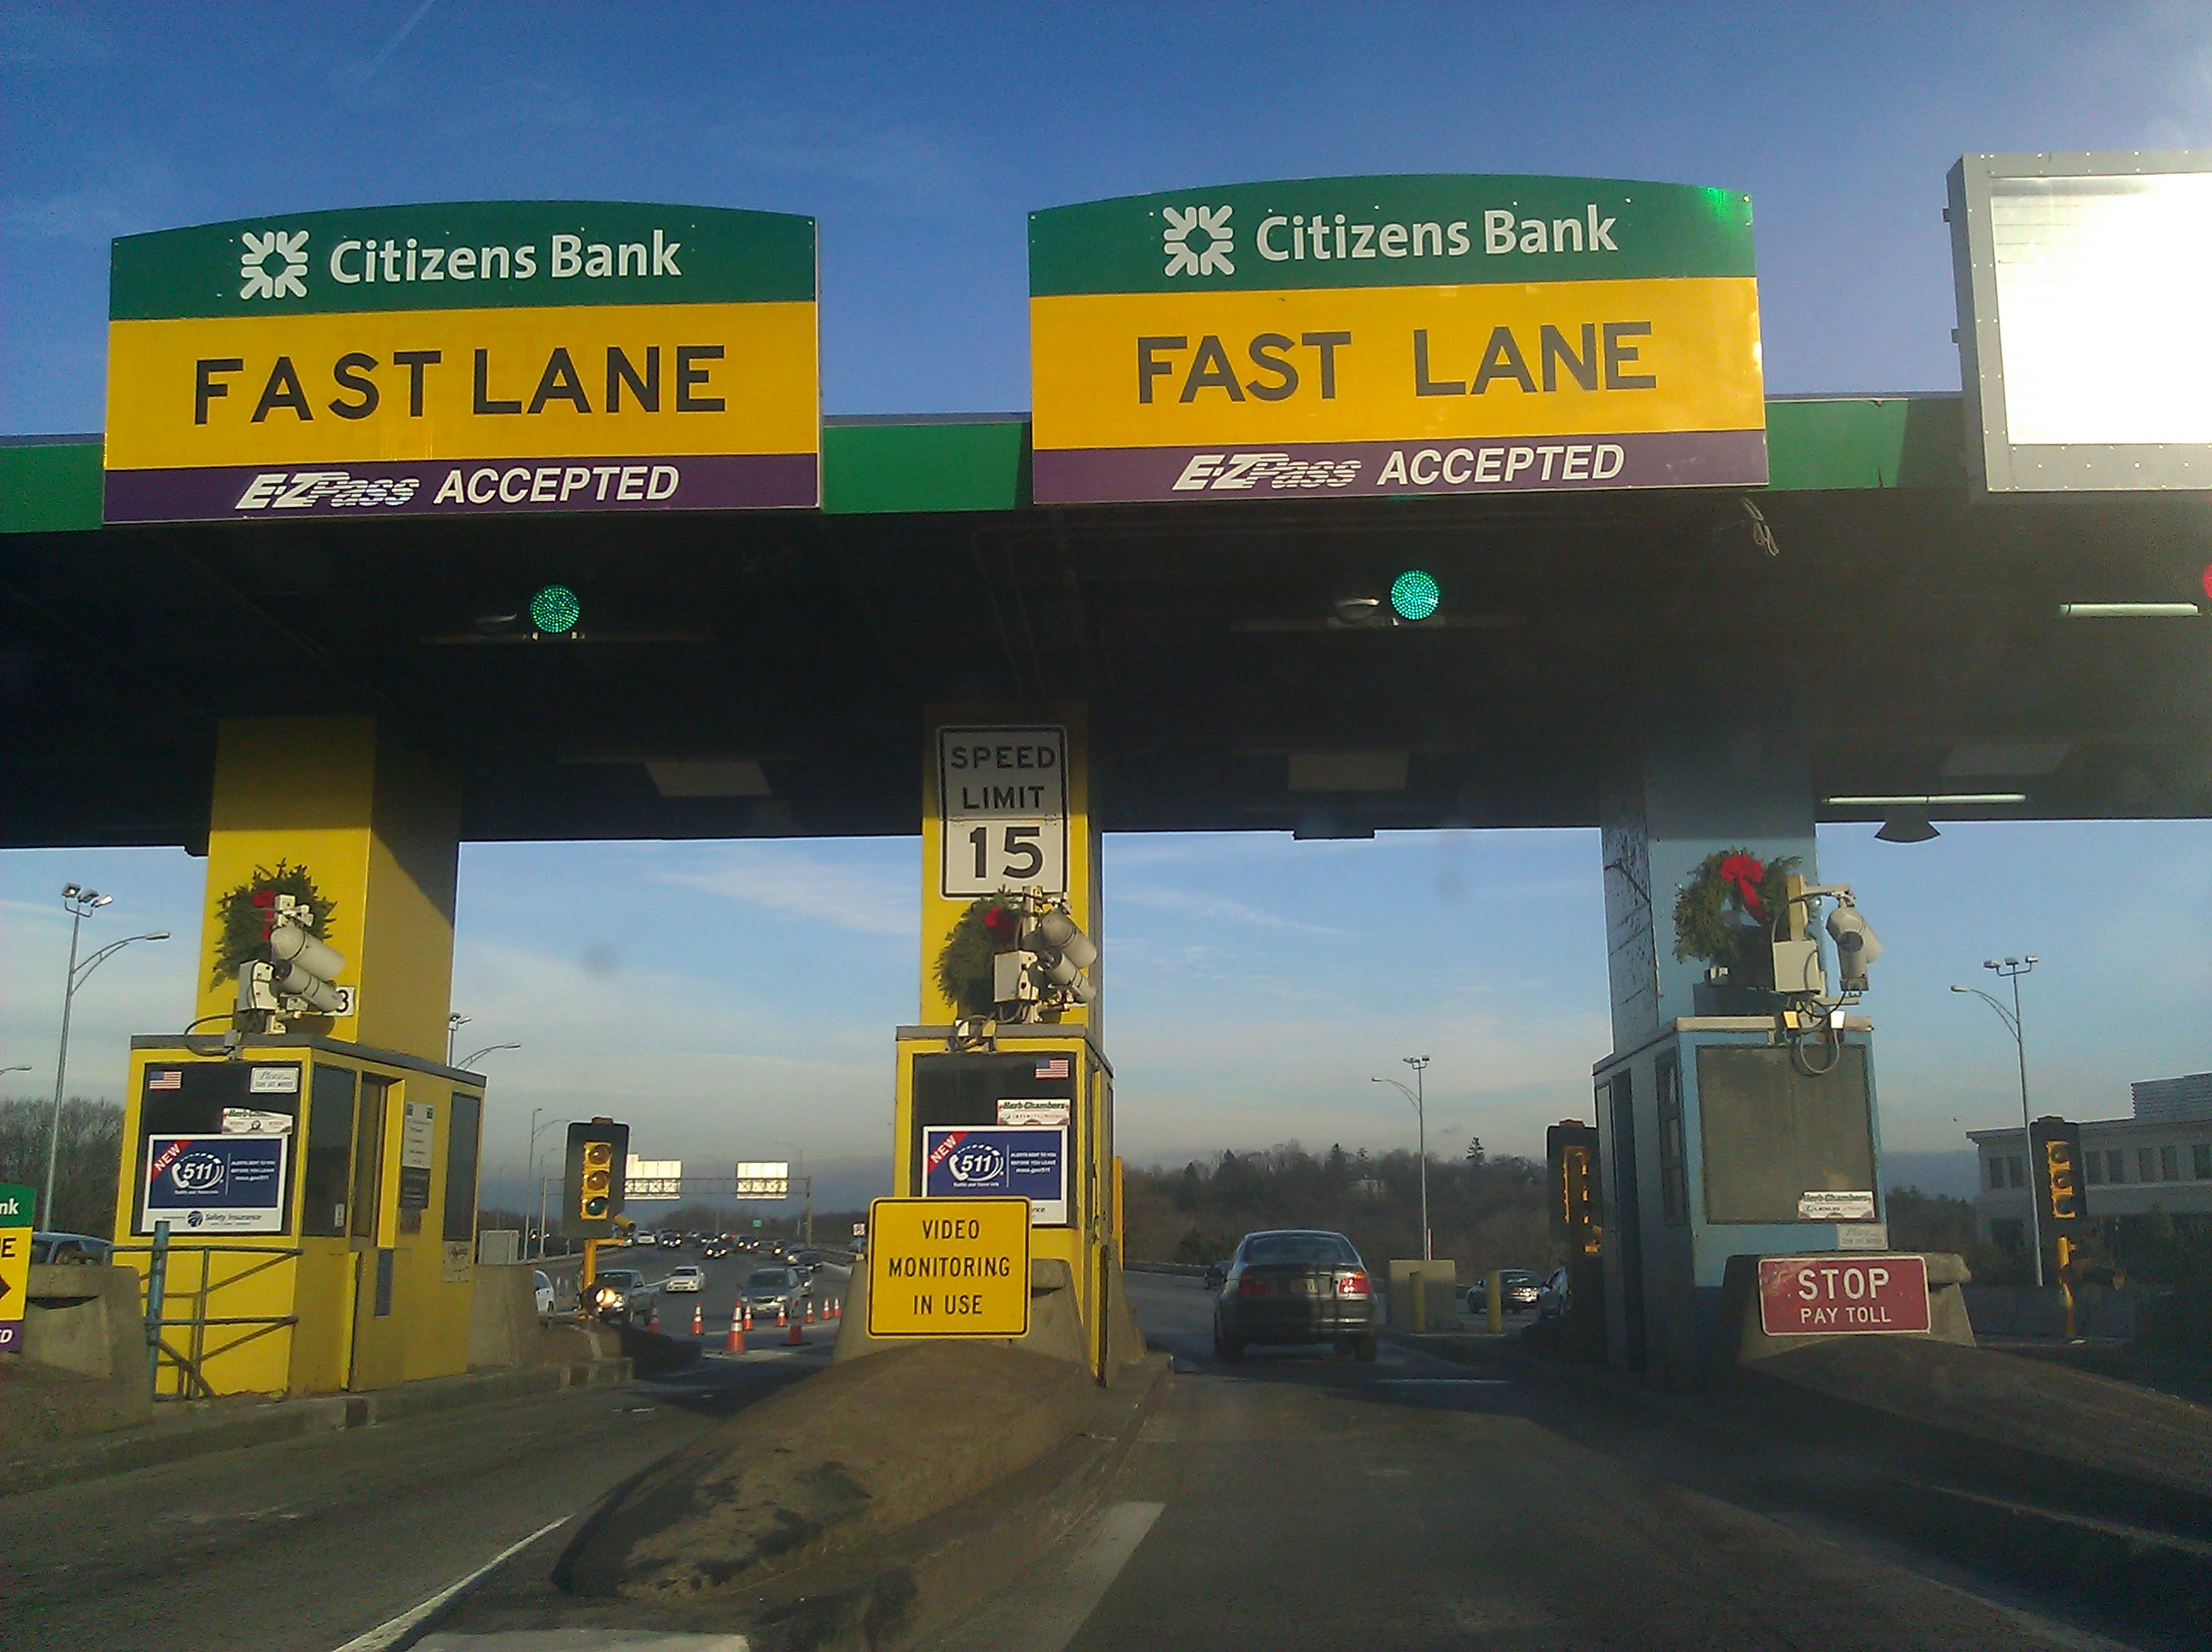 Security by design is  about fast lanes